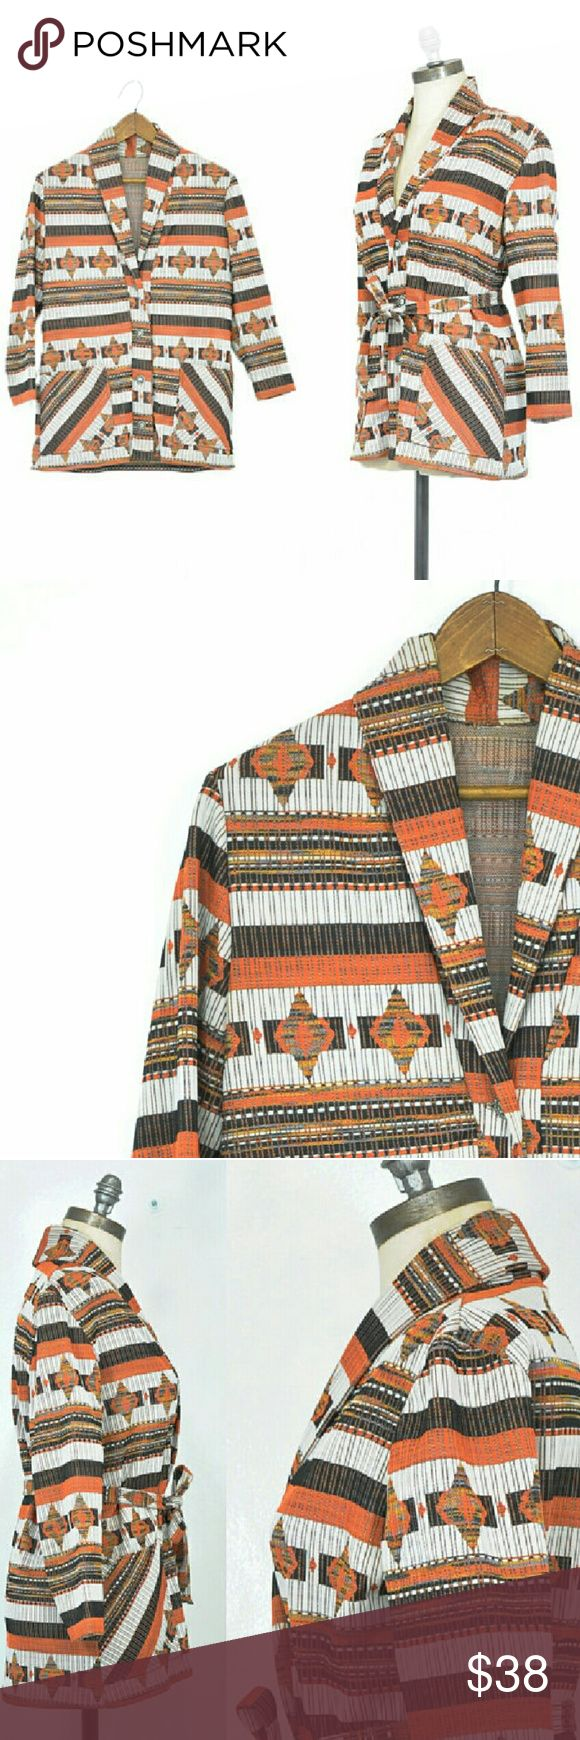 """Vintage Southwester Jacket 